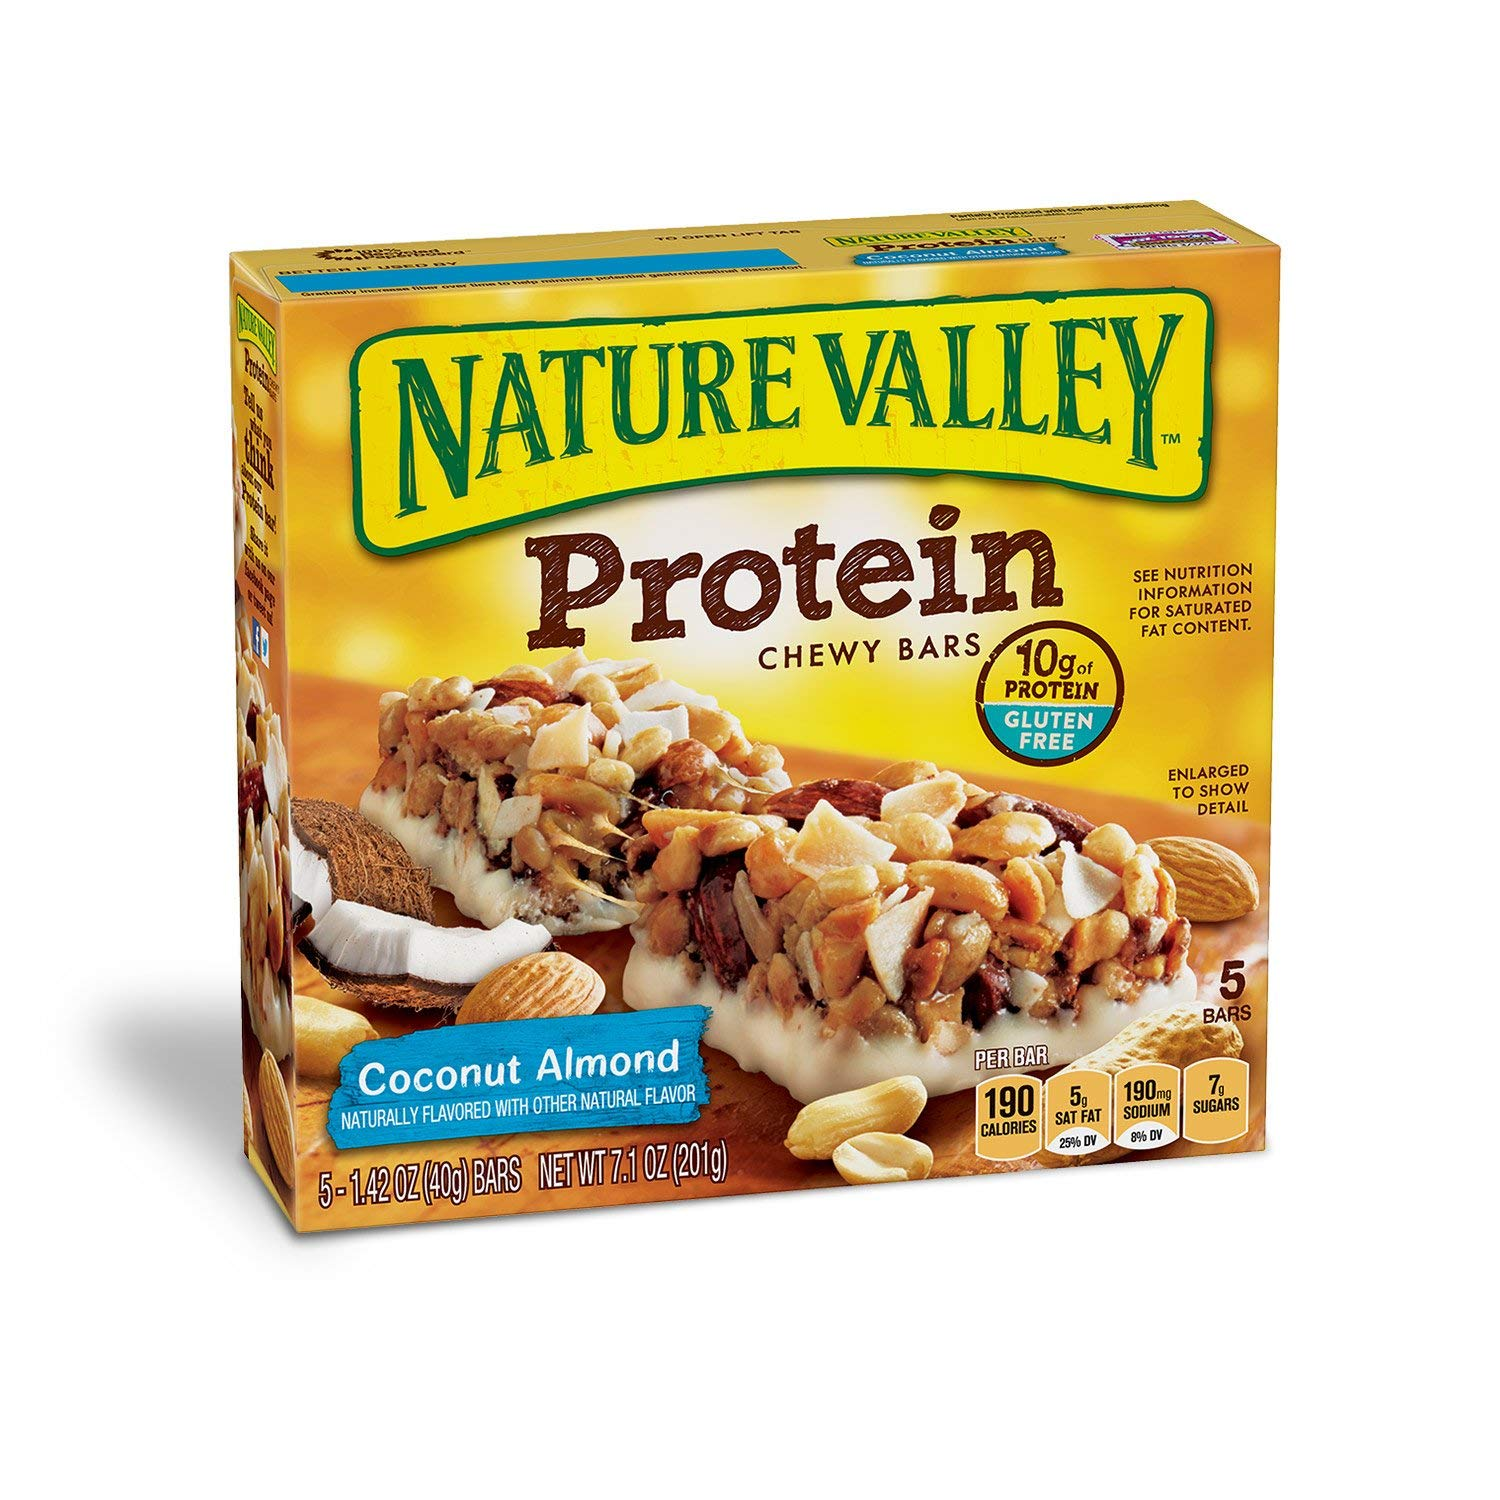 Nature Valley – Protein Bar Review